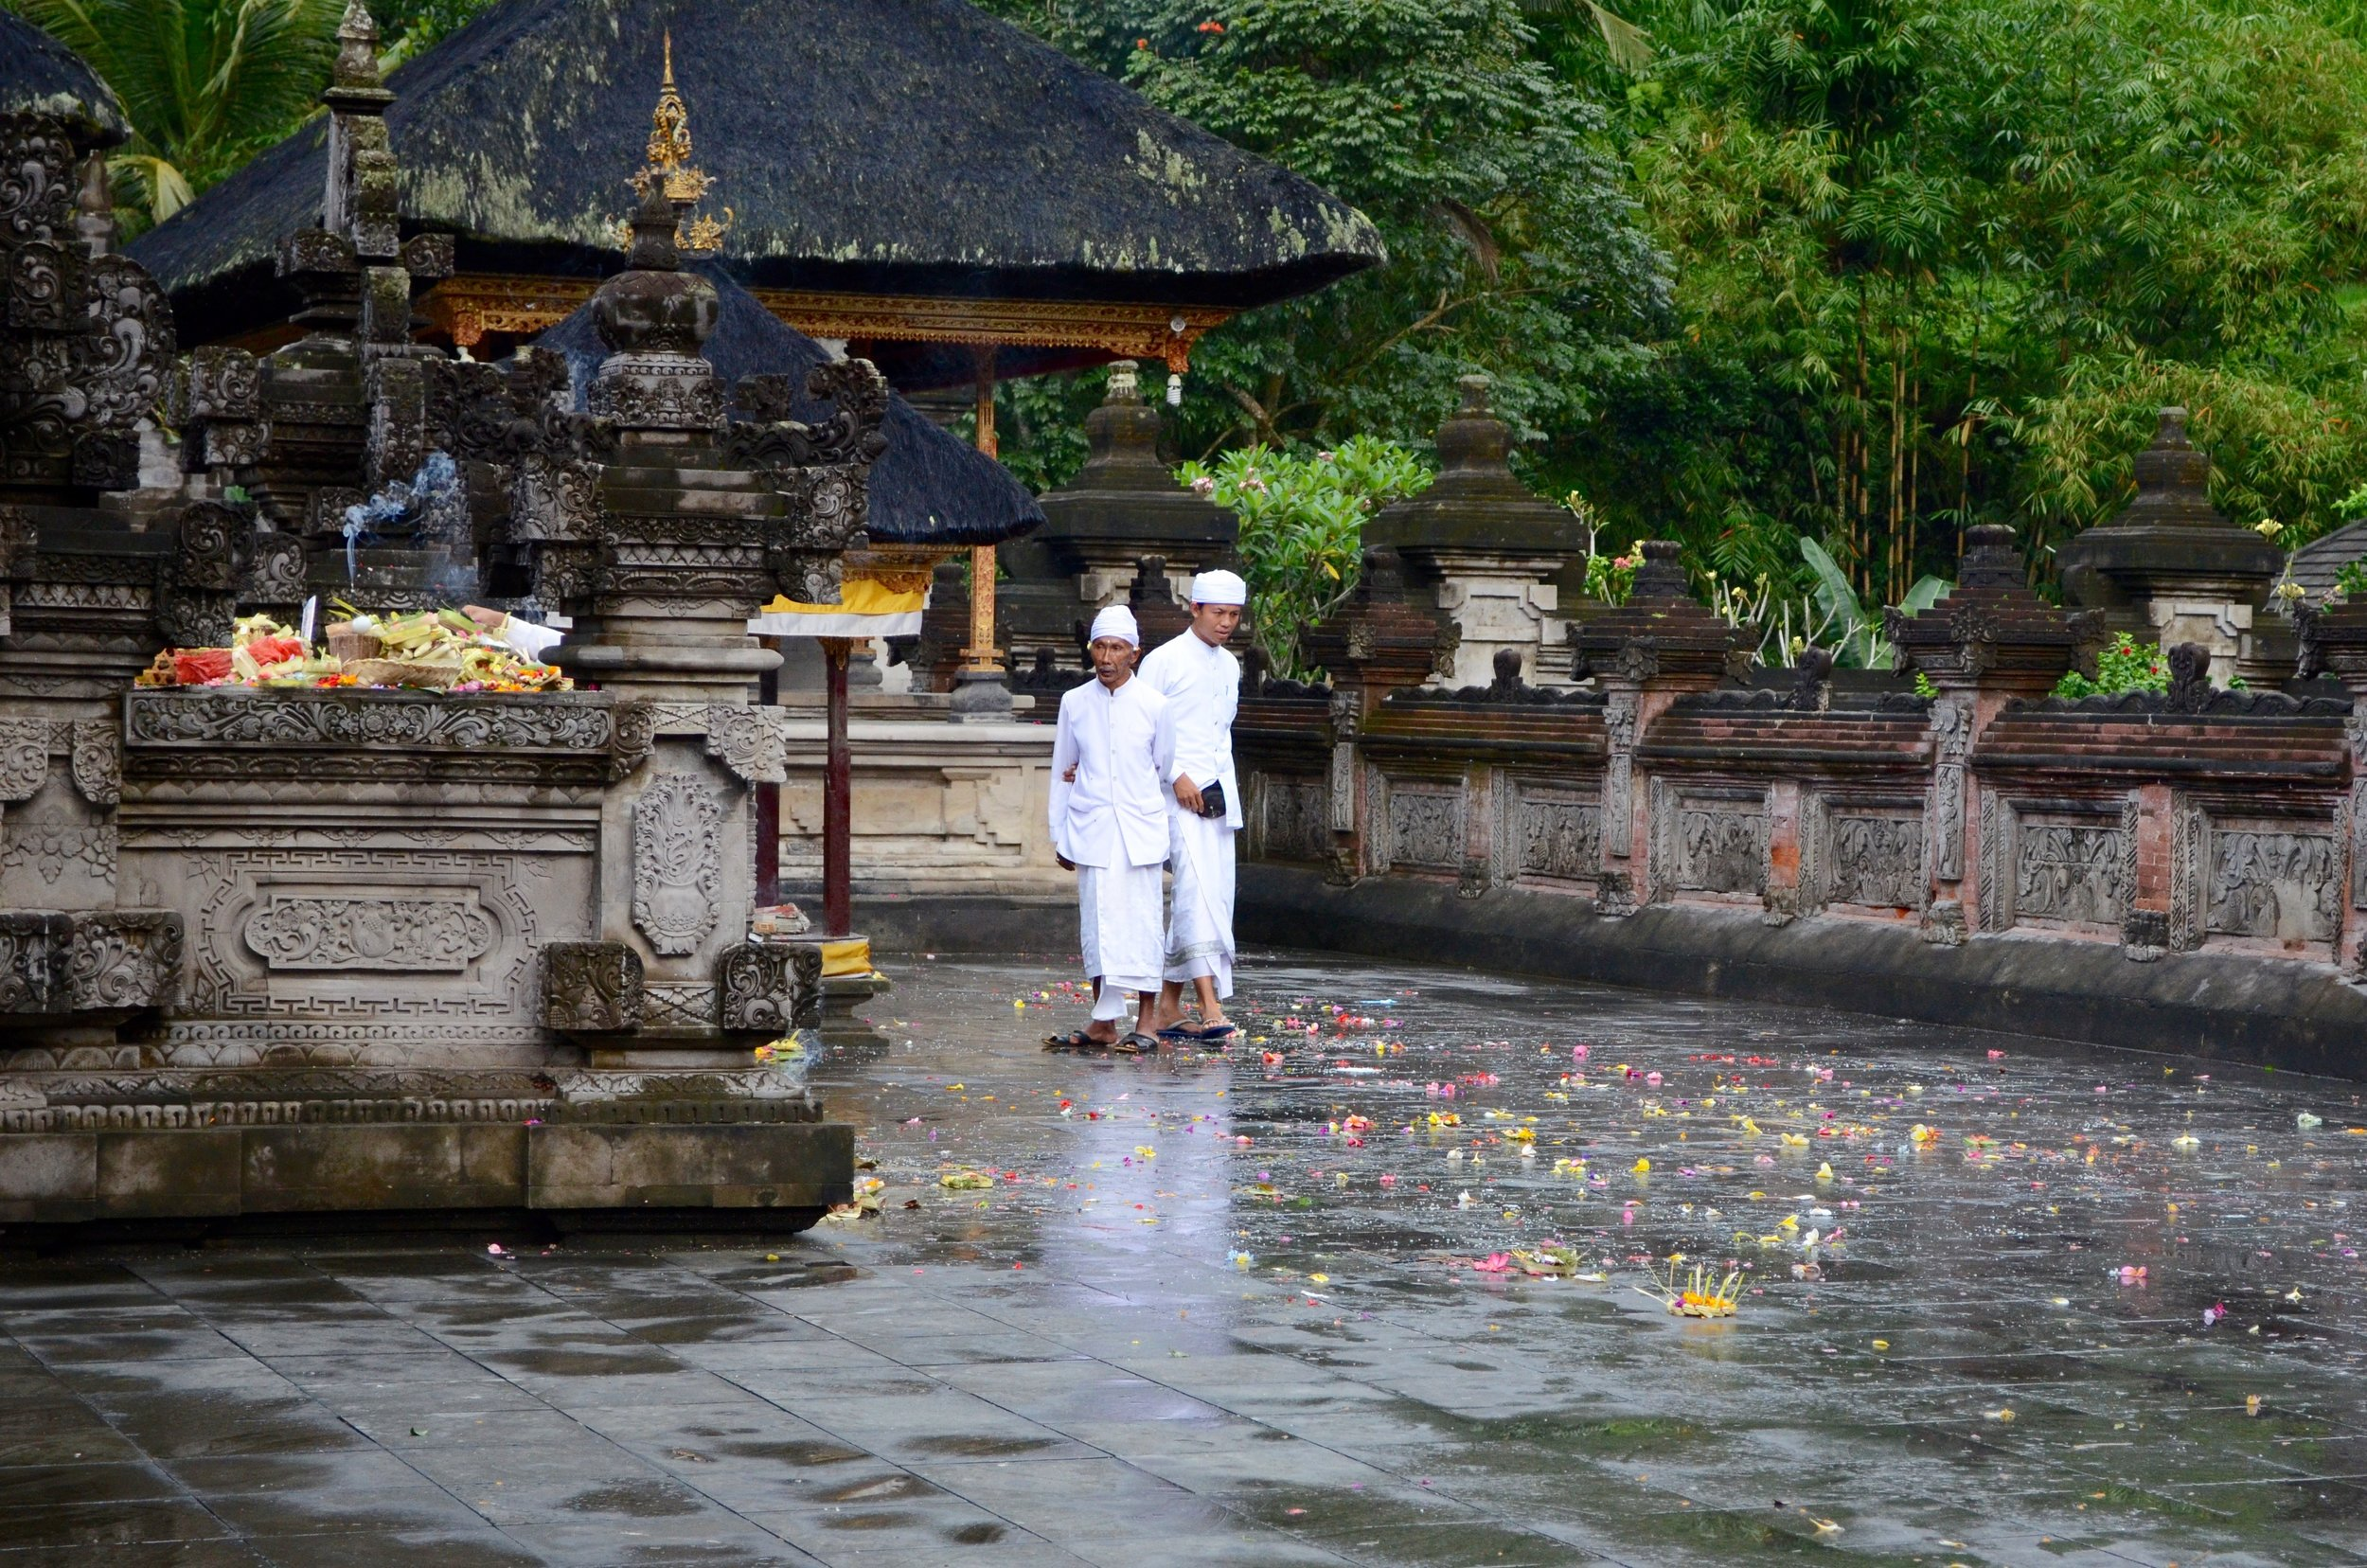 Priests among the colourful offerings after a ceremony at Tirta Empul, a water temple near Ubud, Bali.